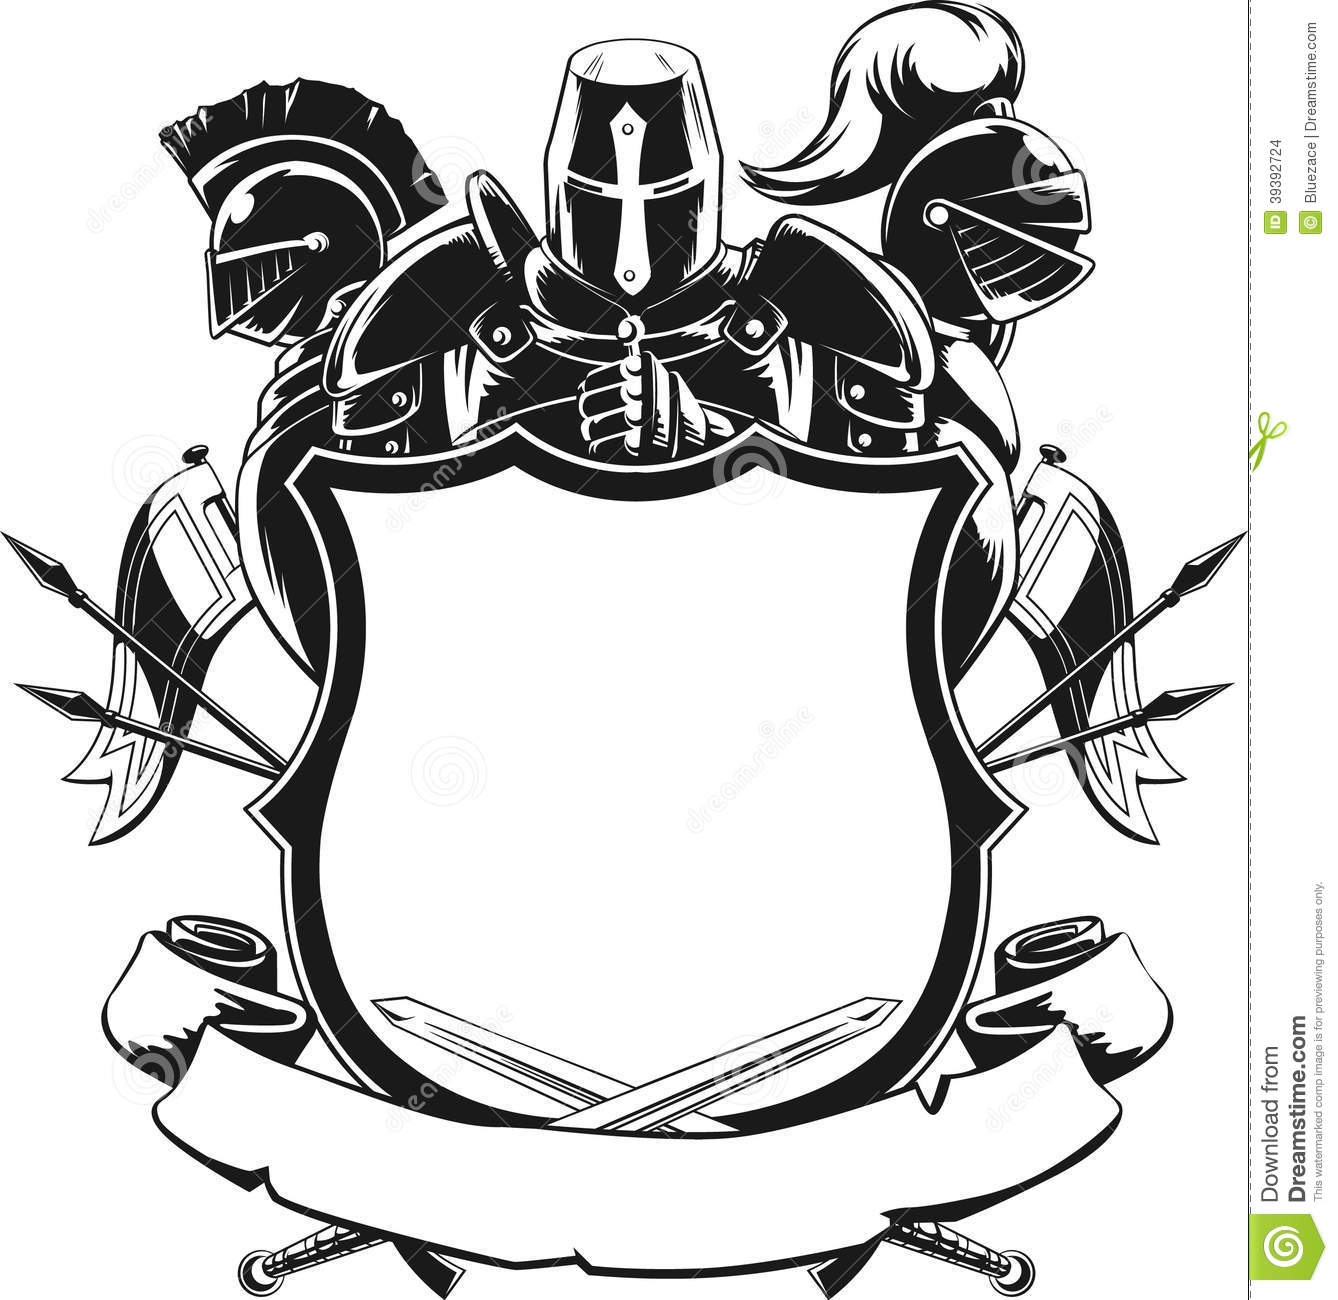 Shepherd Gold On Blue Silhouette Ornament: Shield Cartoons, Illustrations & Vector Stock Images